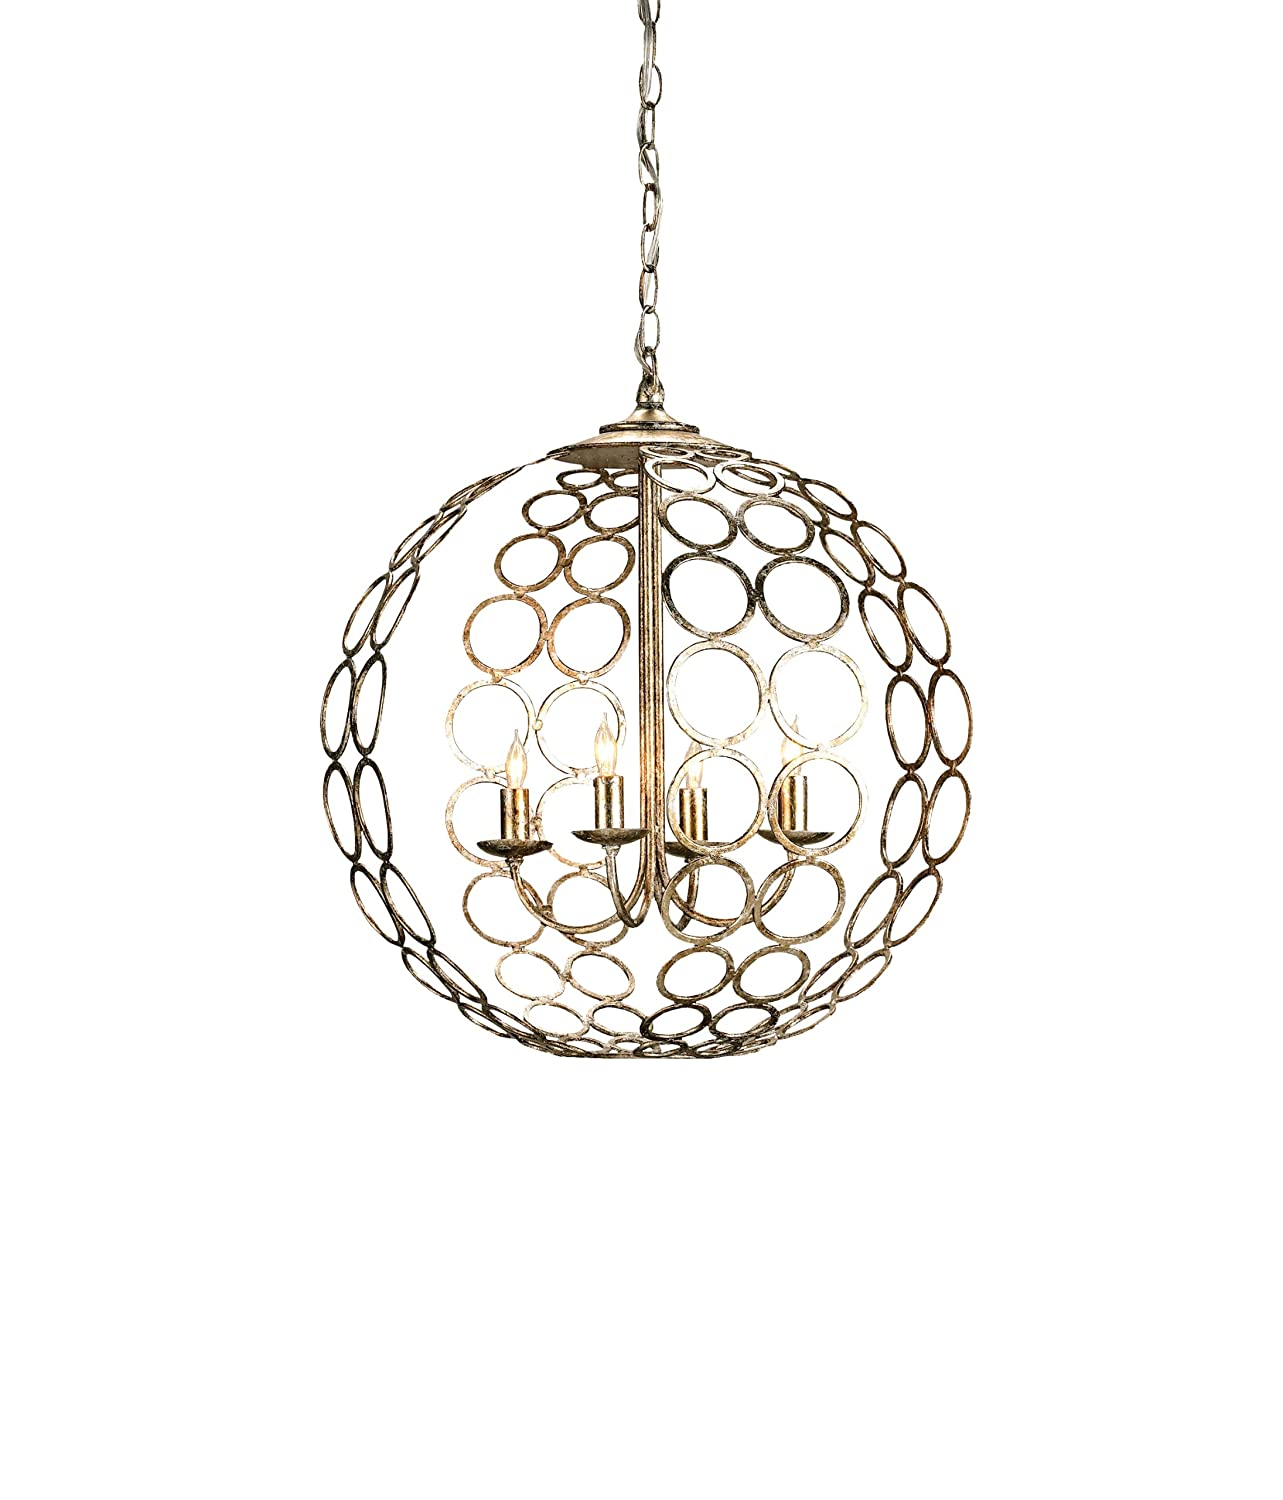 Currey and pany 9961 Tartufo 4 Light Chandelier Antique Silver